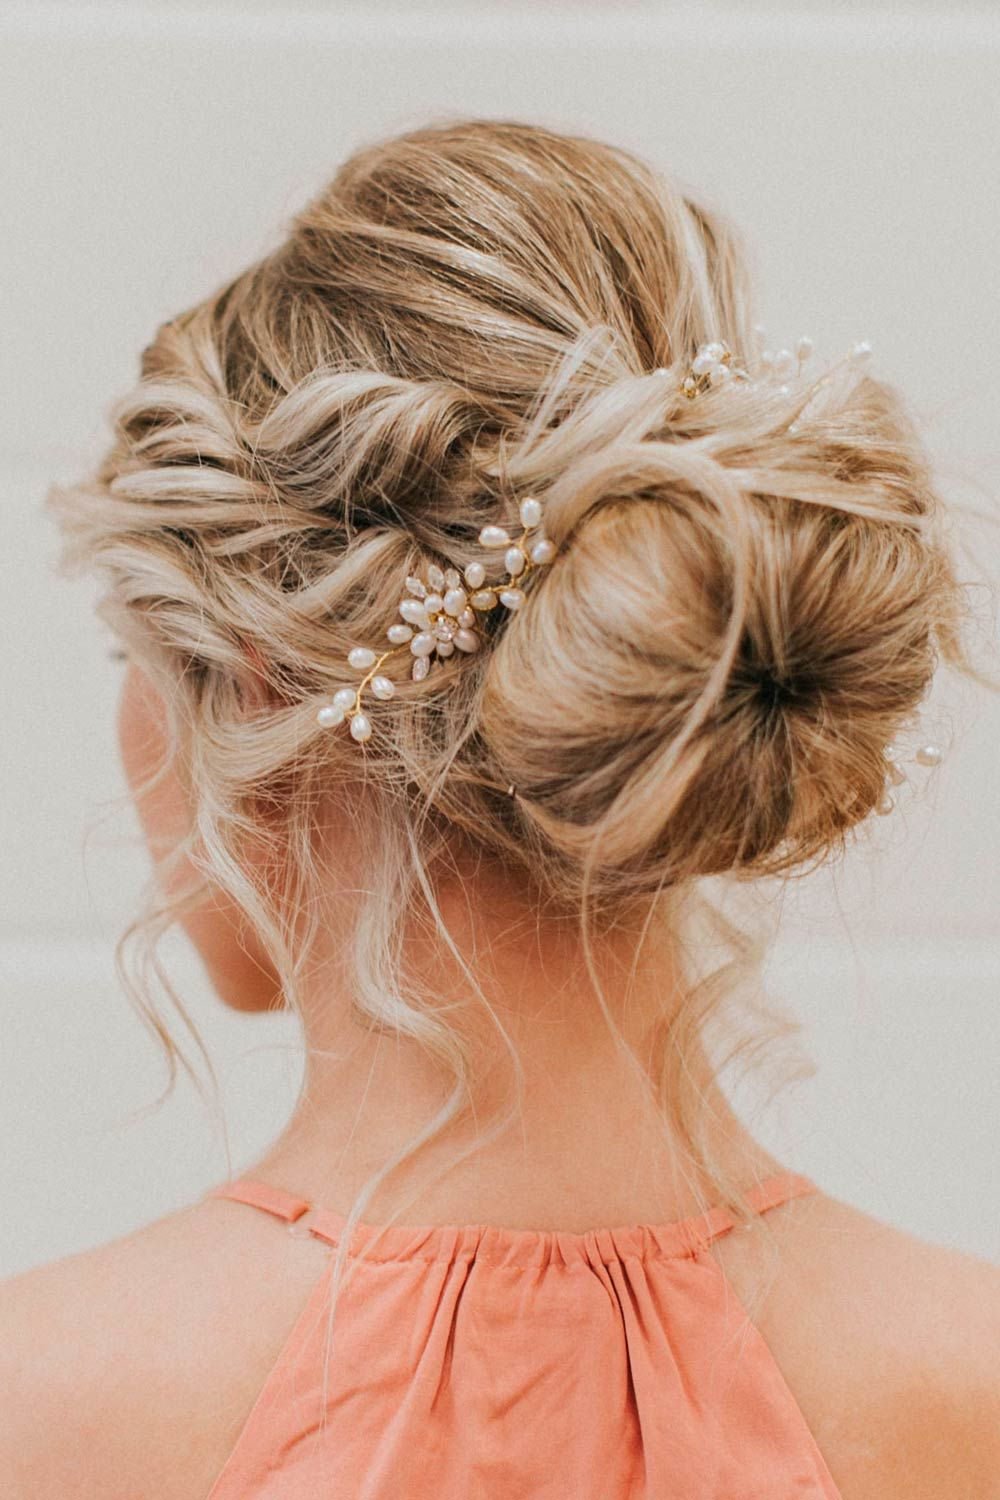 Messy And Accessorized Blonde Updo Hairstyle